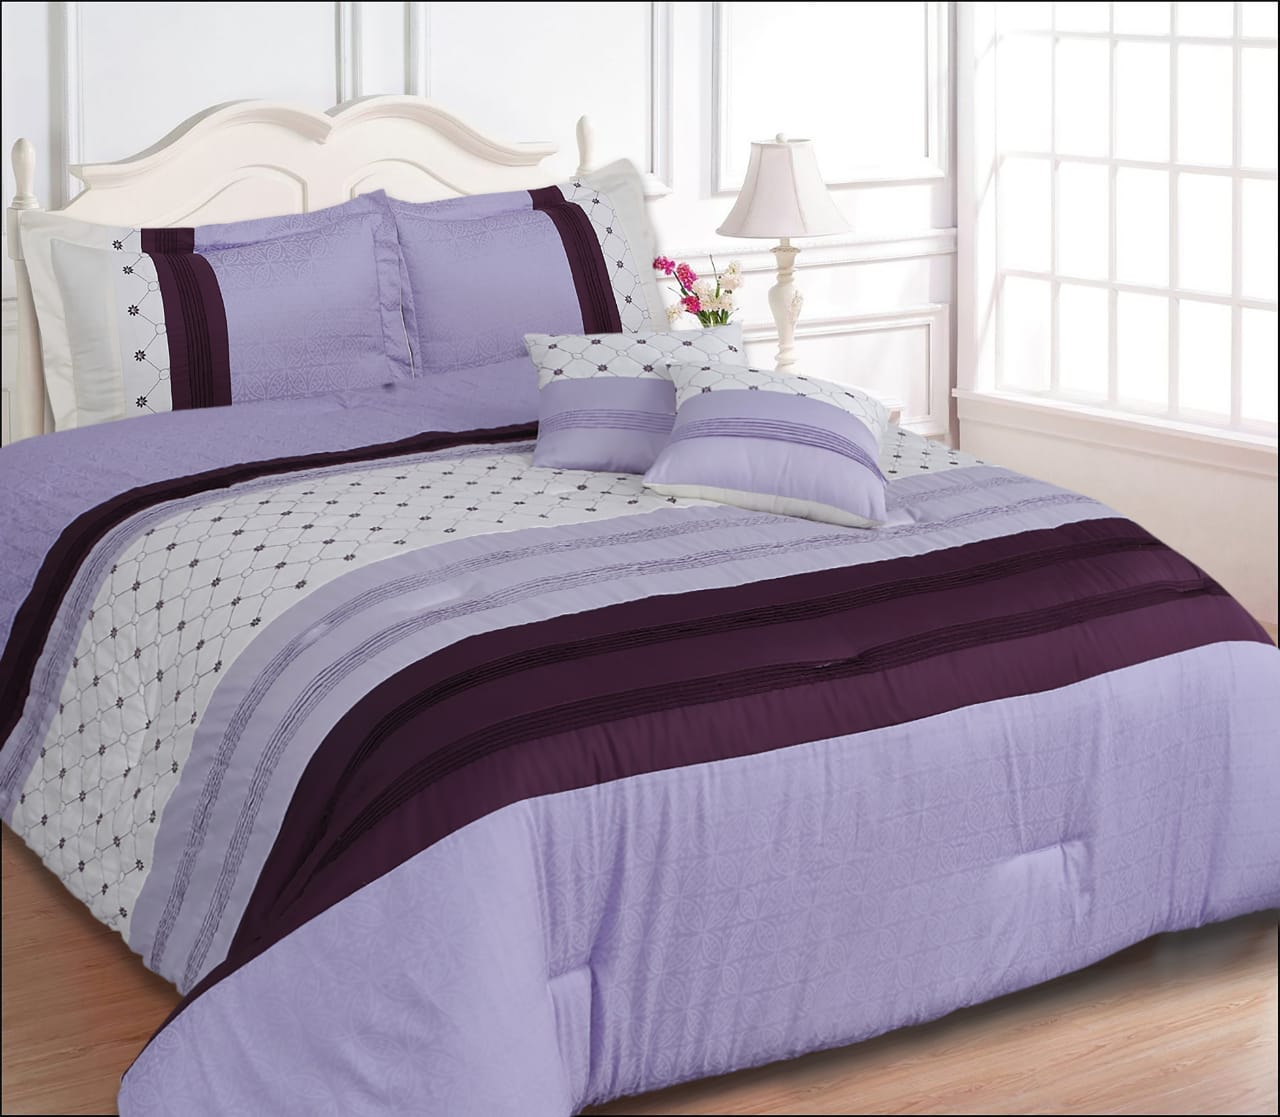 100% Cotton Satin King Bed sheet+Duvet Cover With Two Pillow Cover AIT-10043